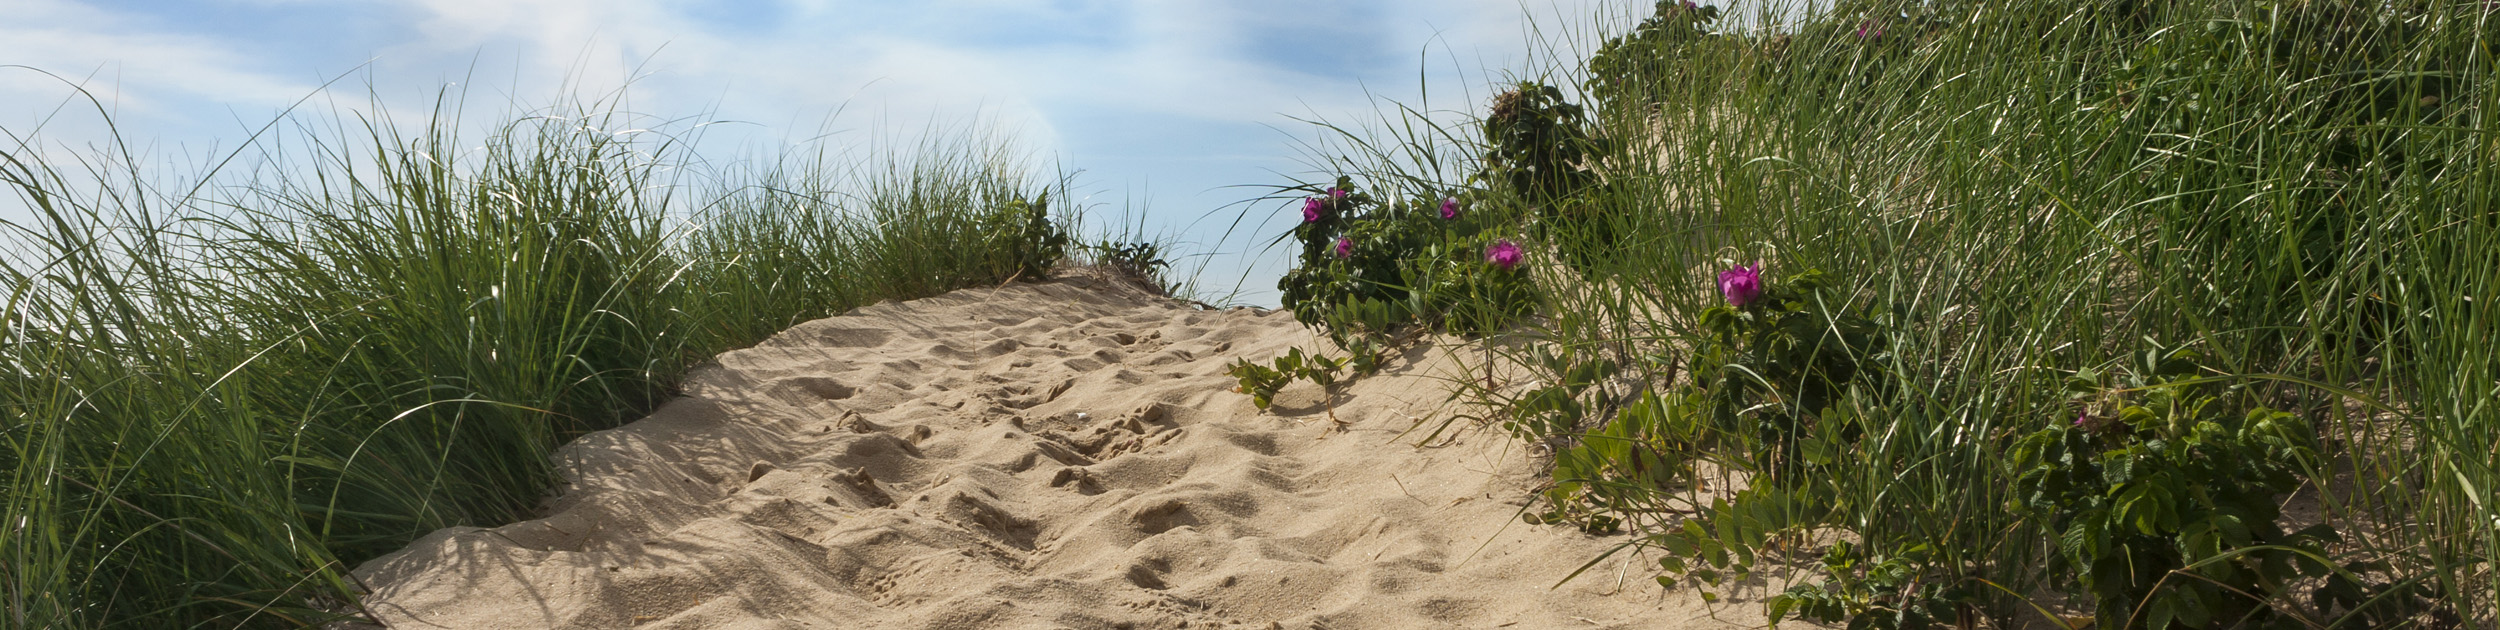 walking path on the beach sand surrounded by long grass on both sides and some pink flowers on the right side